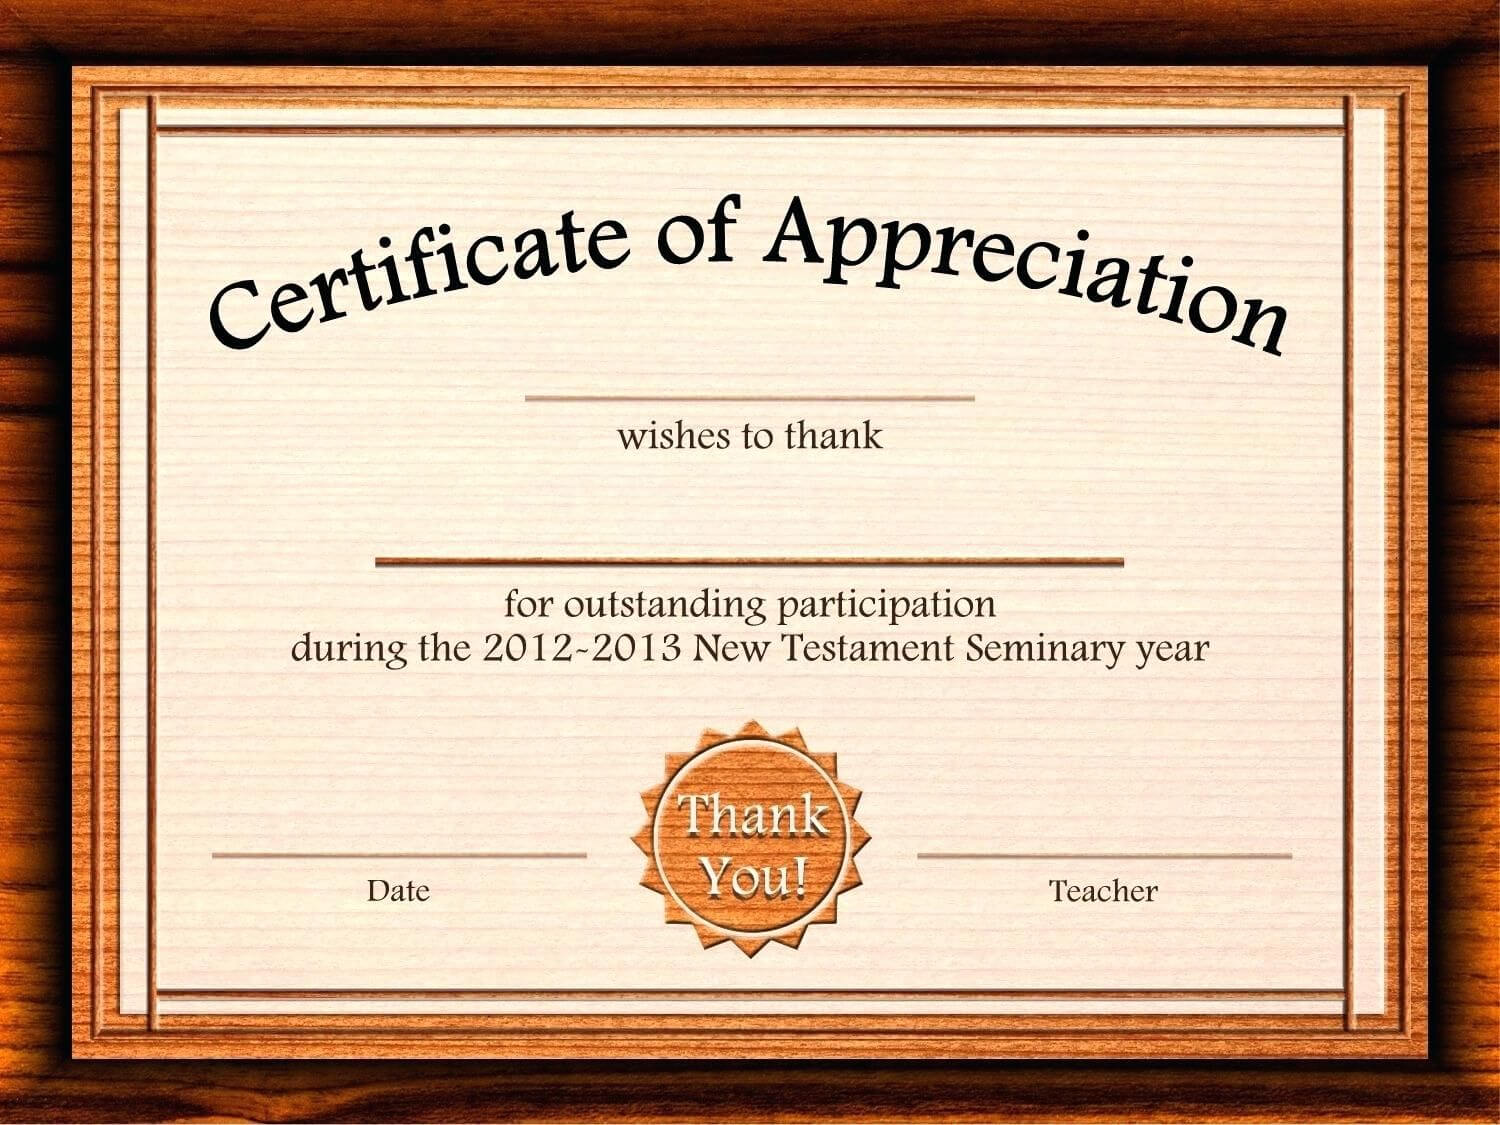 Template: Editable Certificate Of Appreciation Template Free throughout Certificate Of Participation Template Word